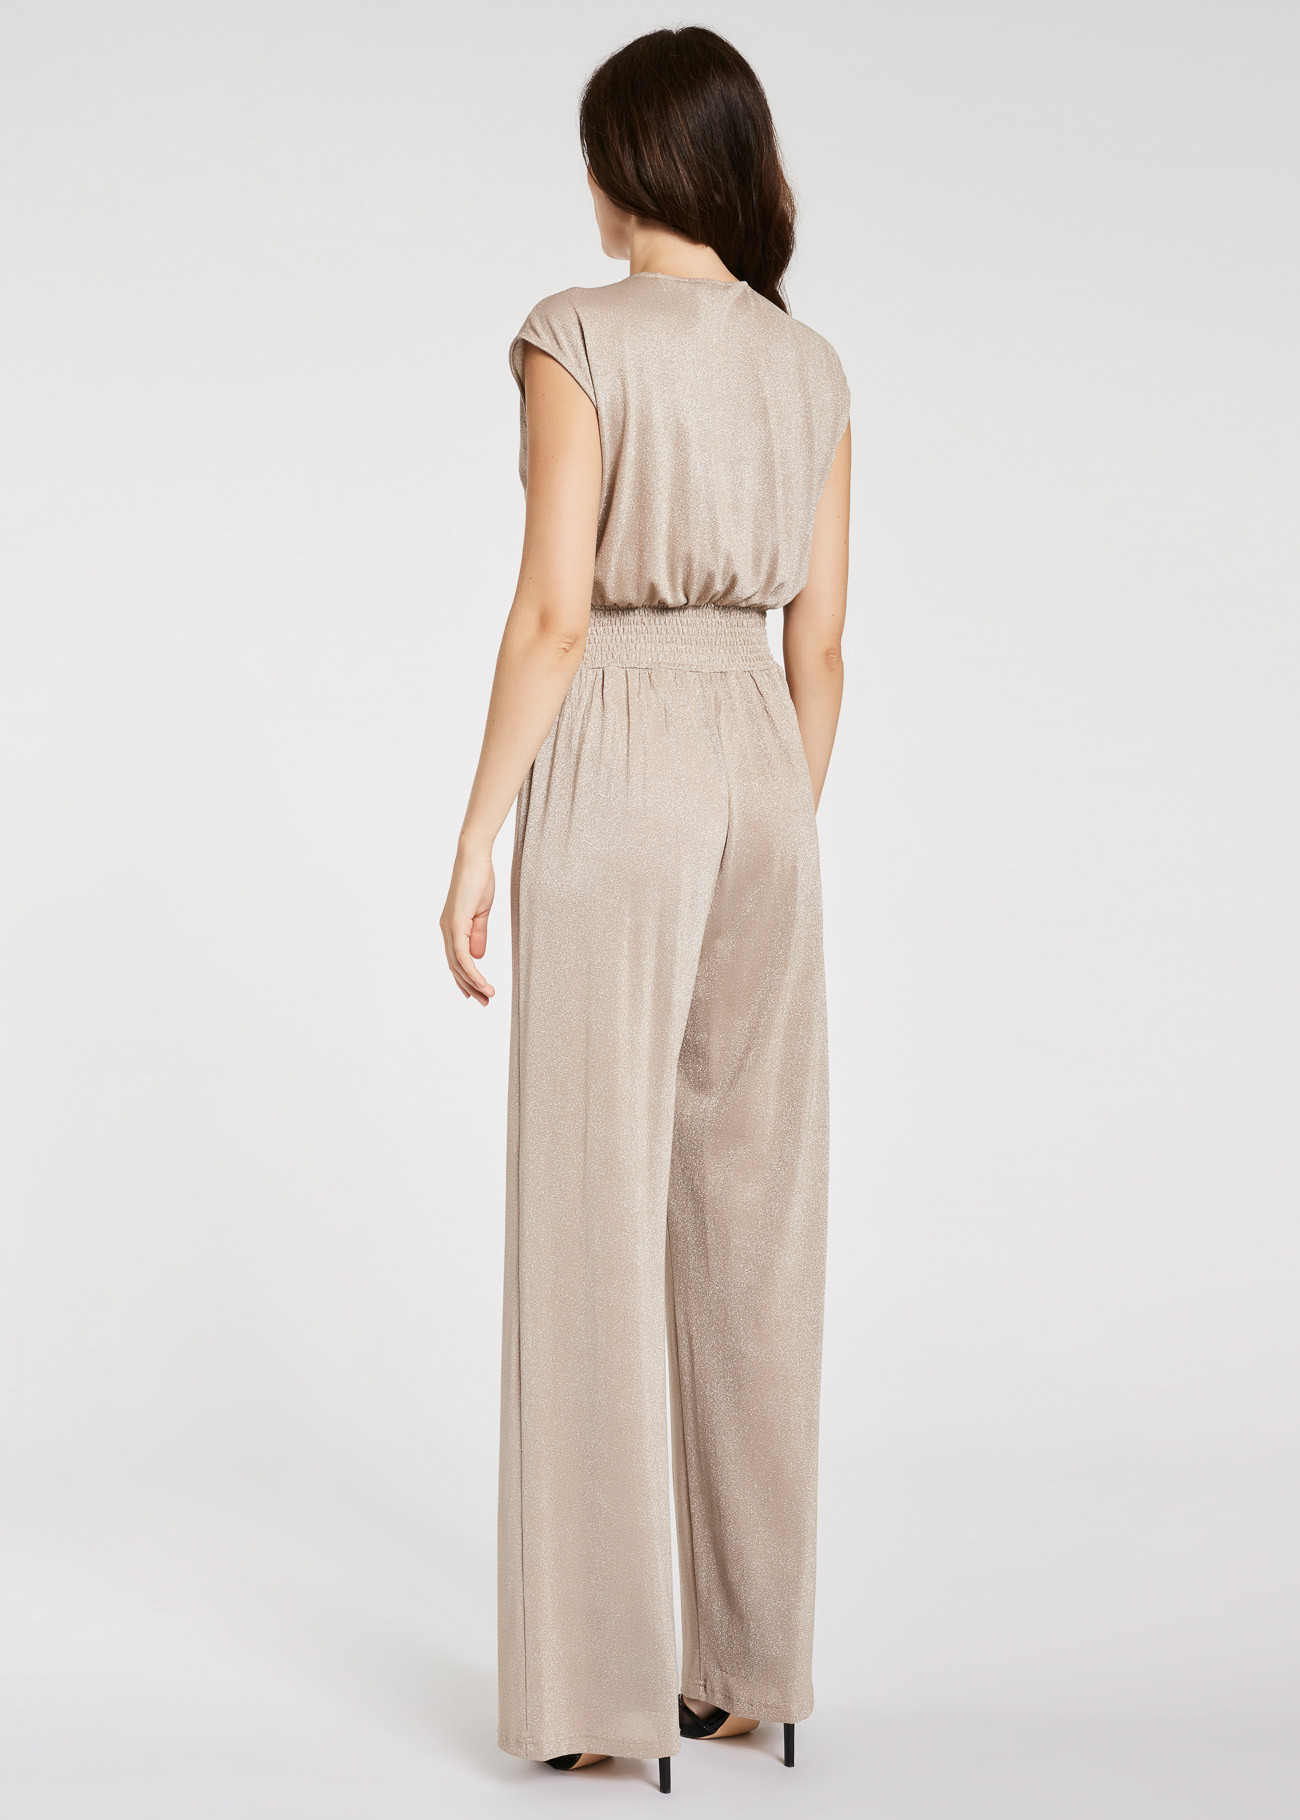 Jumpsuit in lurex  fabric  GAUDI FASHION |  | FD240012373